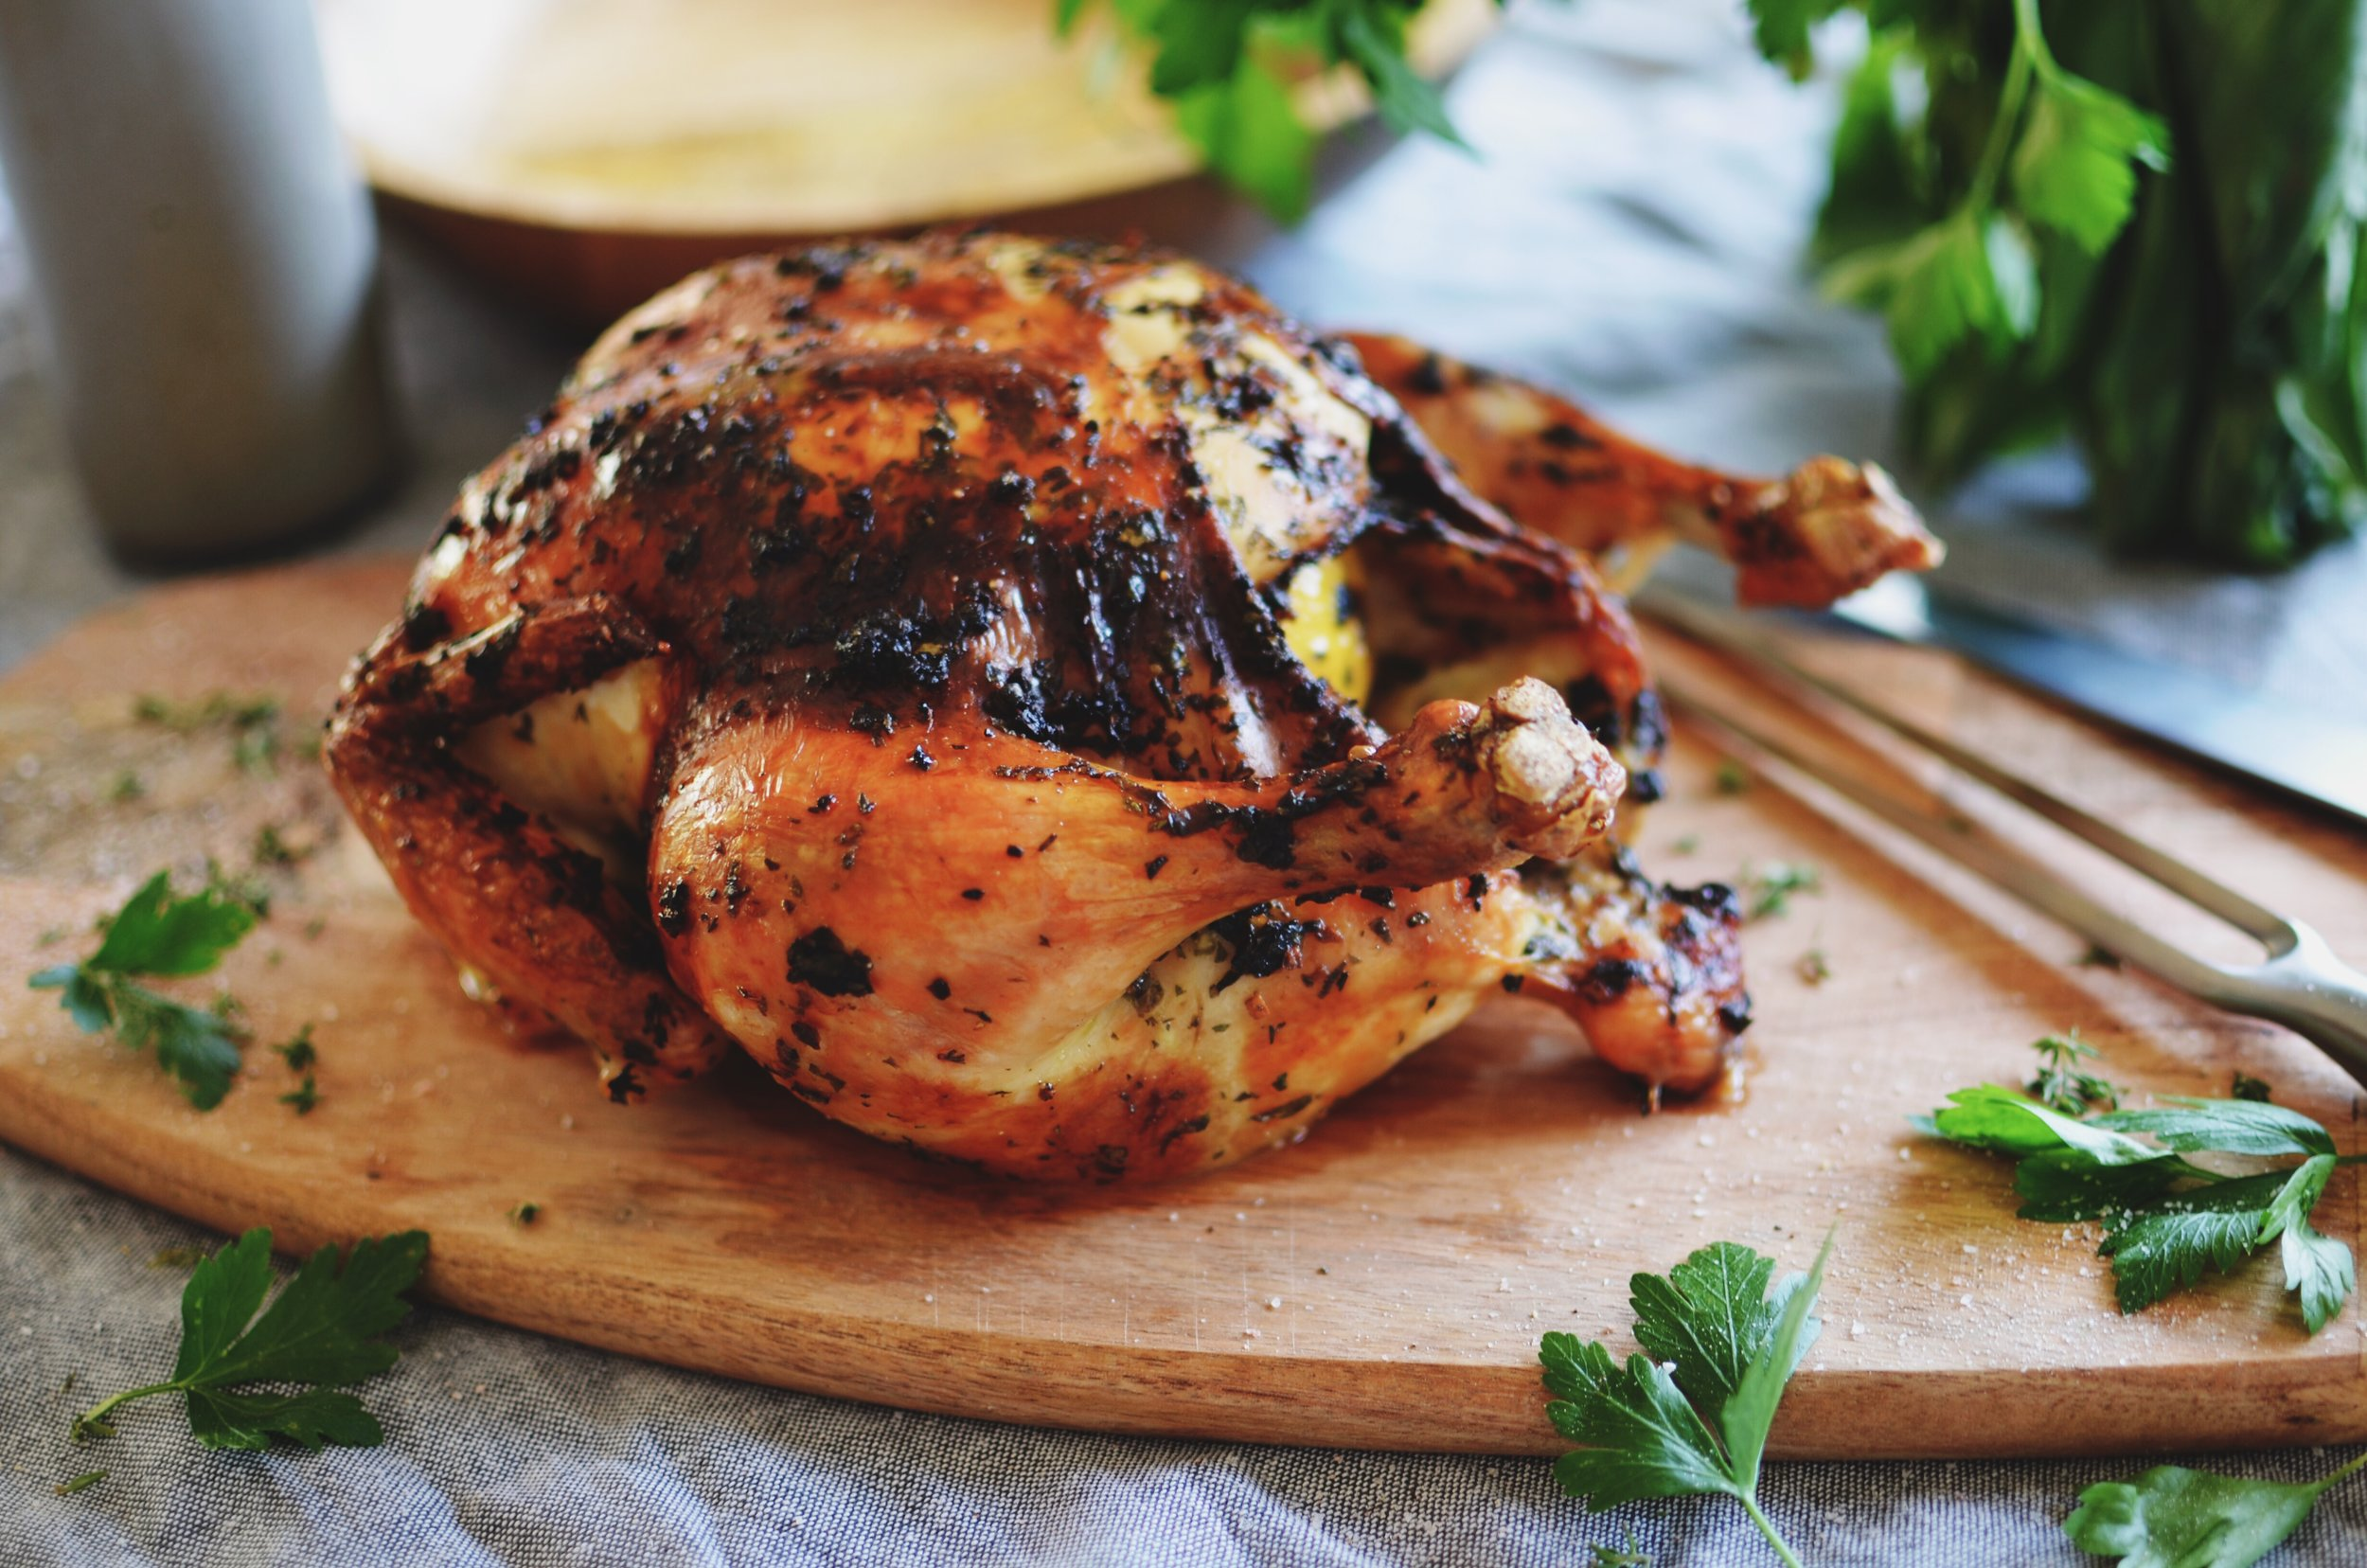 Then a little roast chicken - It's not as intimidating as you might think. Chickens have been cooked one way or another, dating all the way back to 400 B.C.E in Israel where it's thought chickens were first ever kept for food.